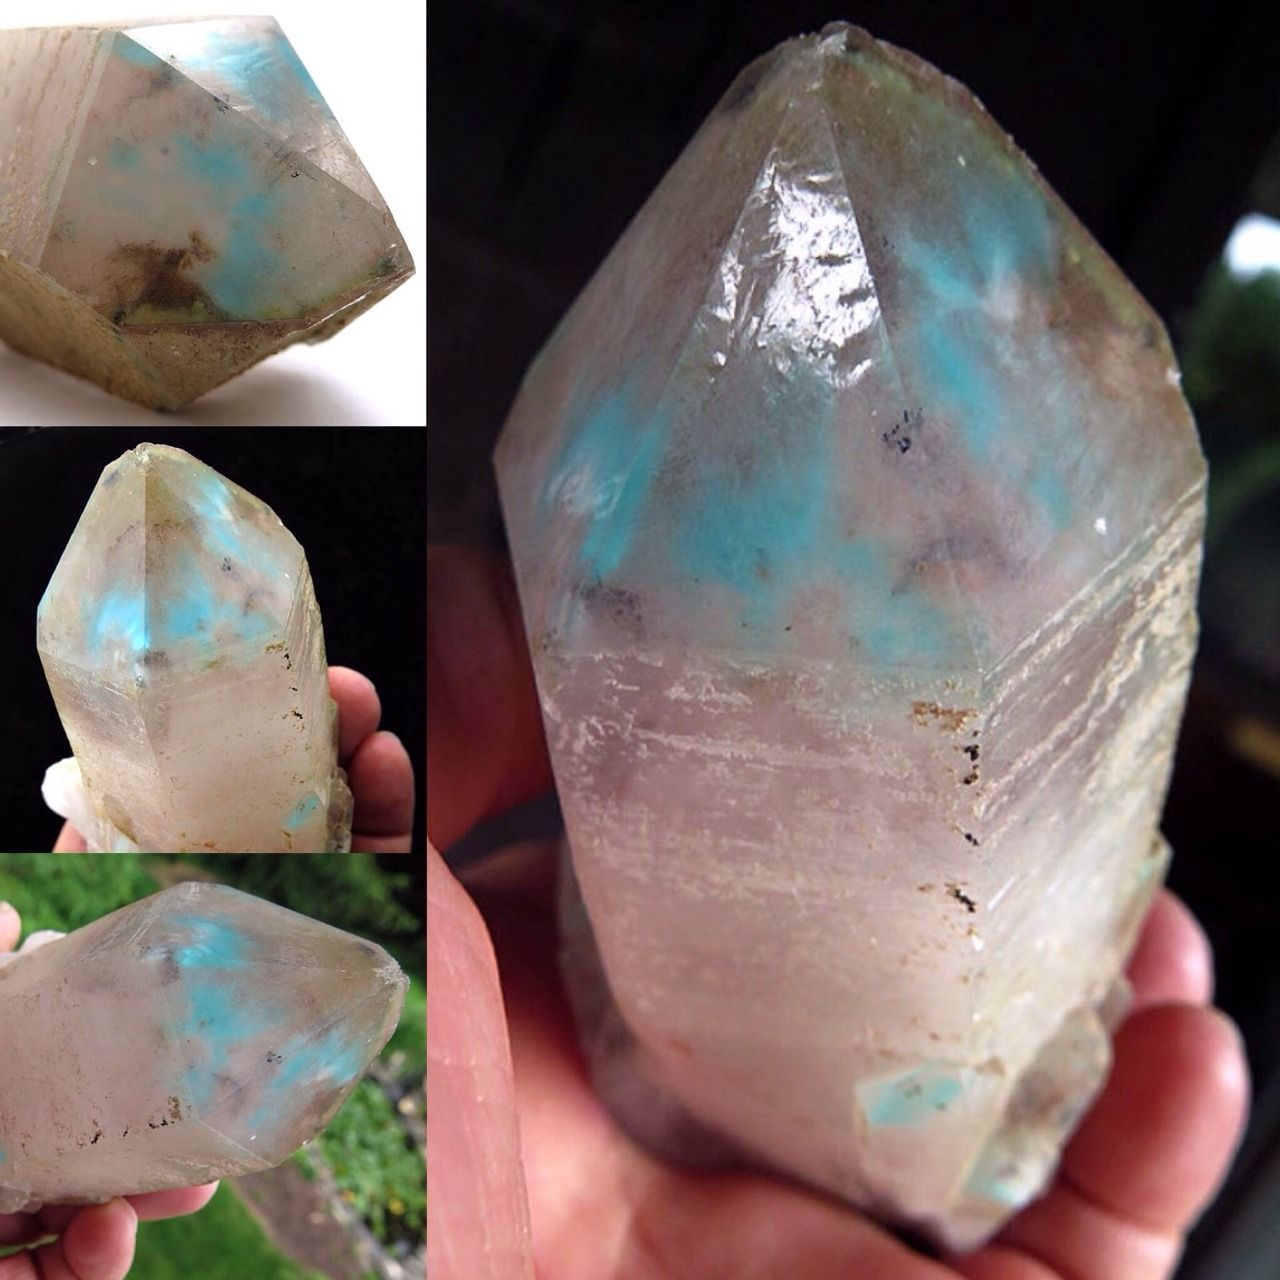 Ghminerals Price Mark Down This Large Ajoite Point Is A Down Gems And Minerals Stones And Crystals Crystals